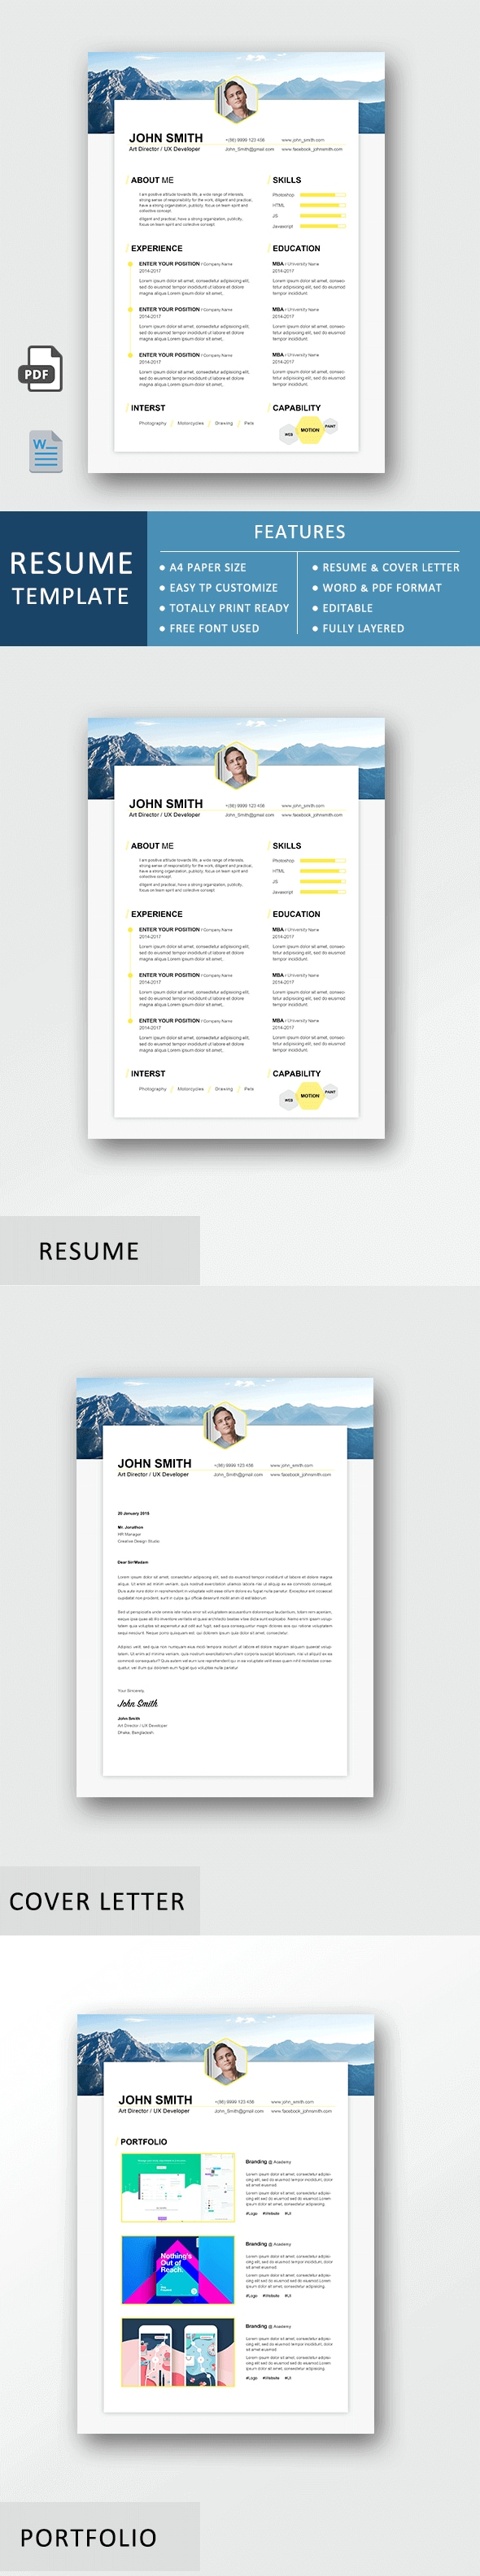 Resume Template - Exclusive Resume Set